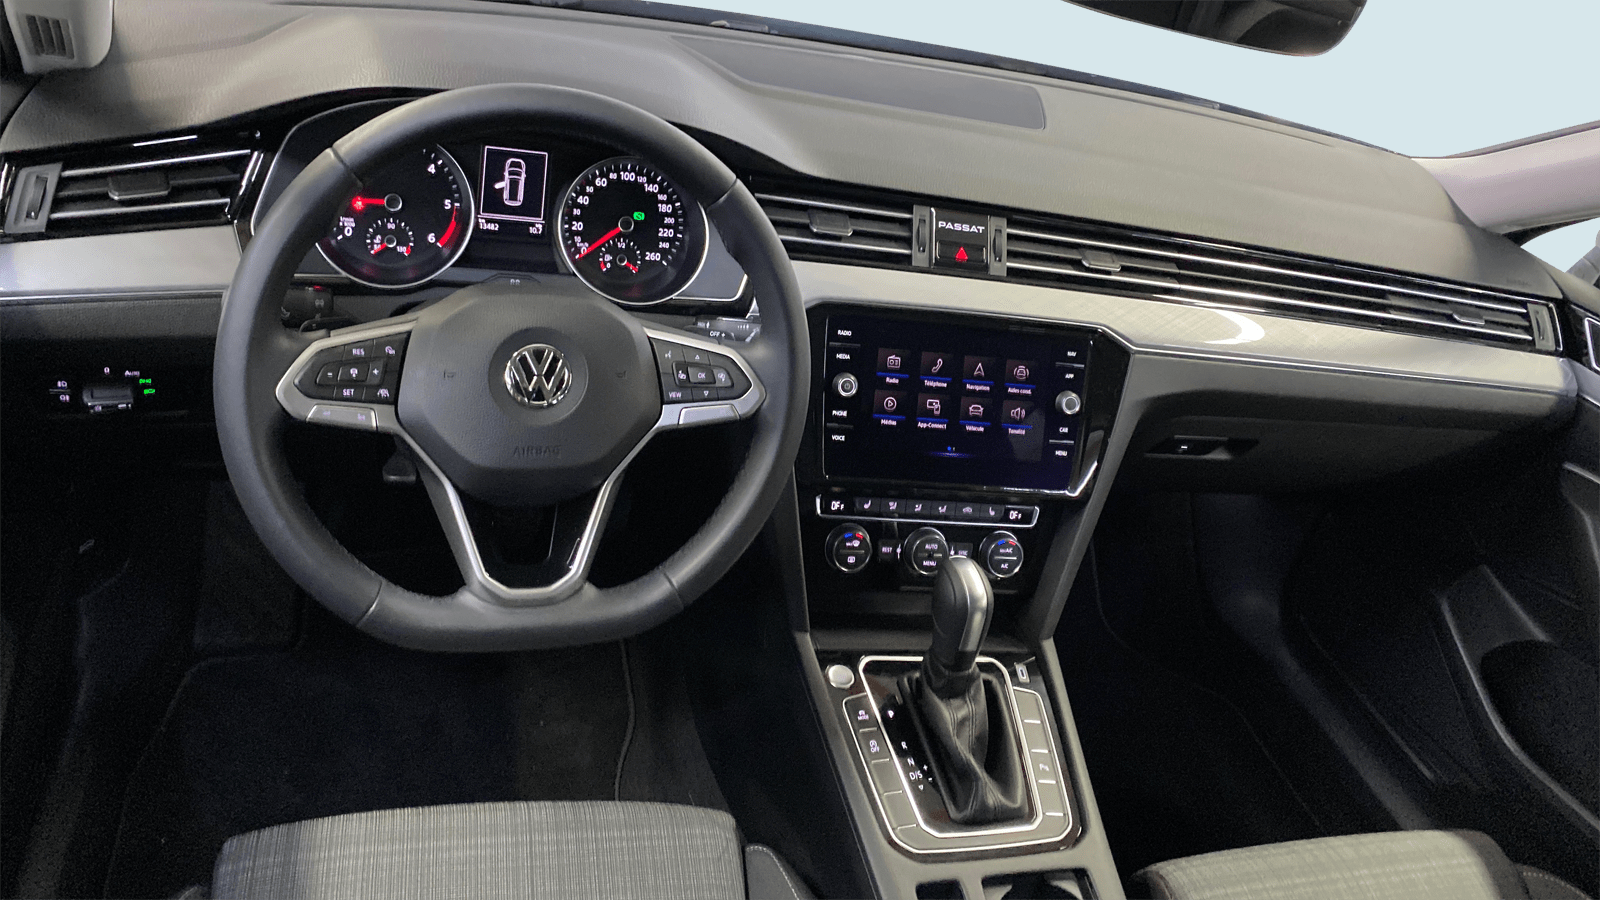 VW Passat Variant Silver interior - Clyde car subscription